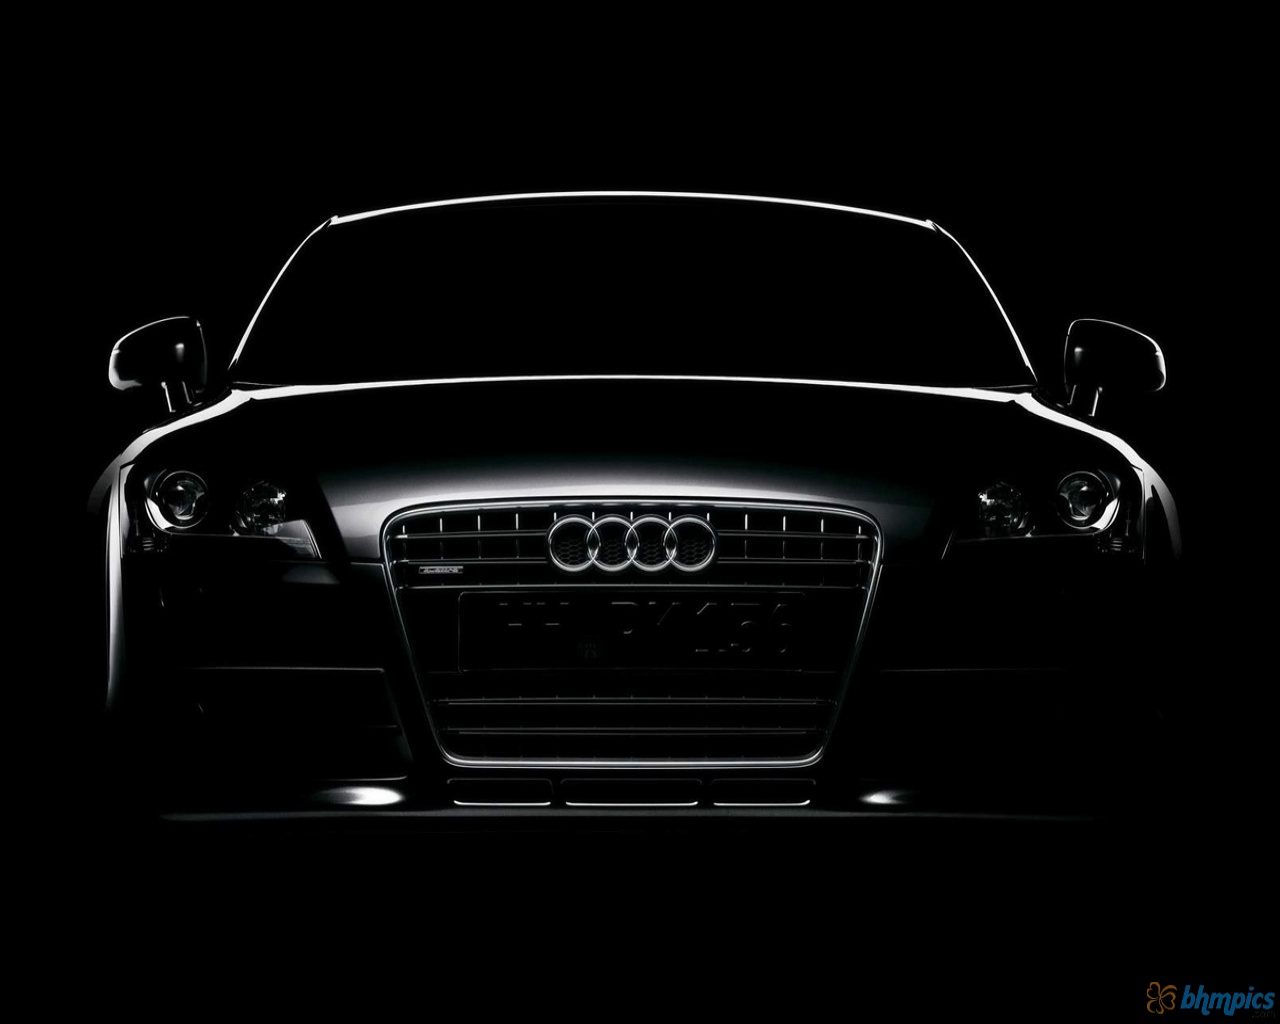 Audi Wallpaper Black 6413 Hd Wallpapers in Cars   Imagescicom 1280x1024